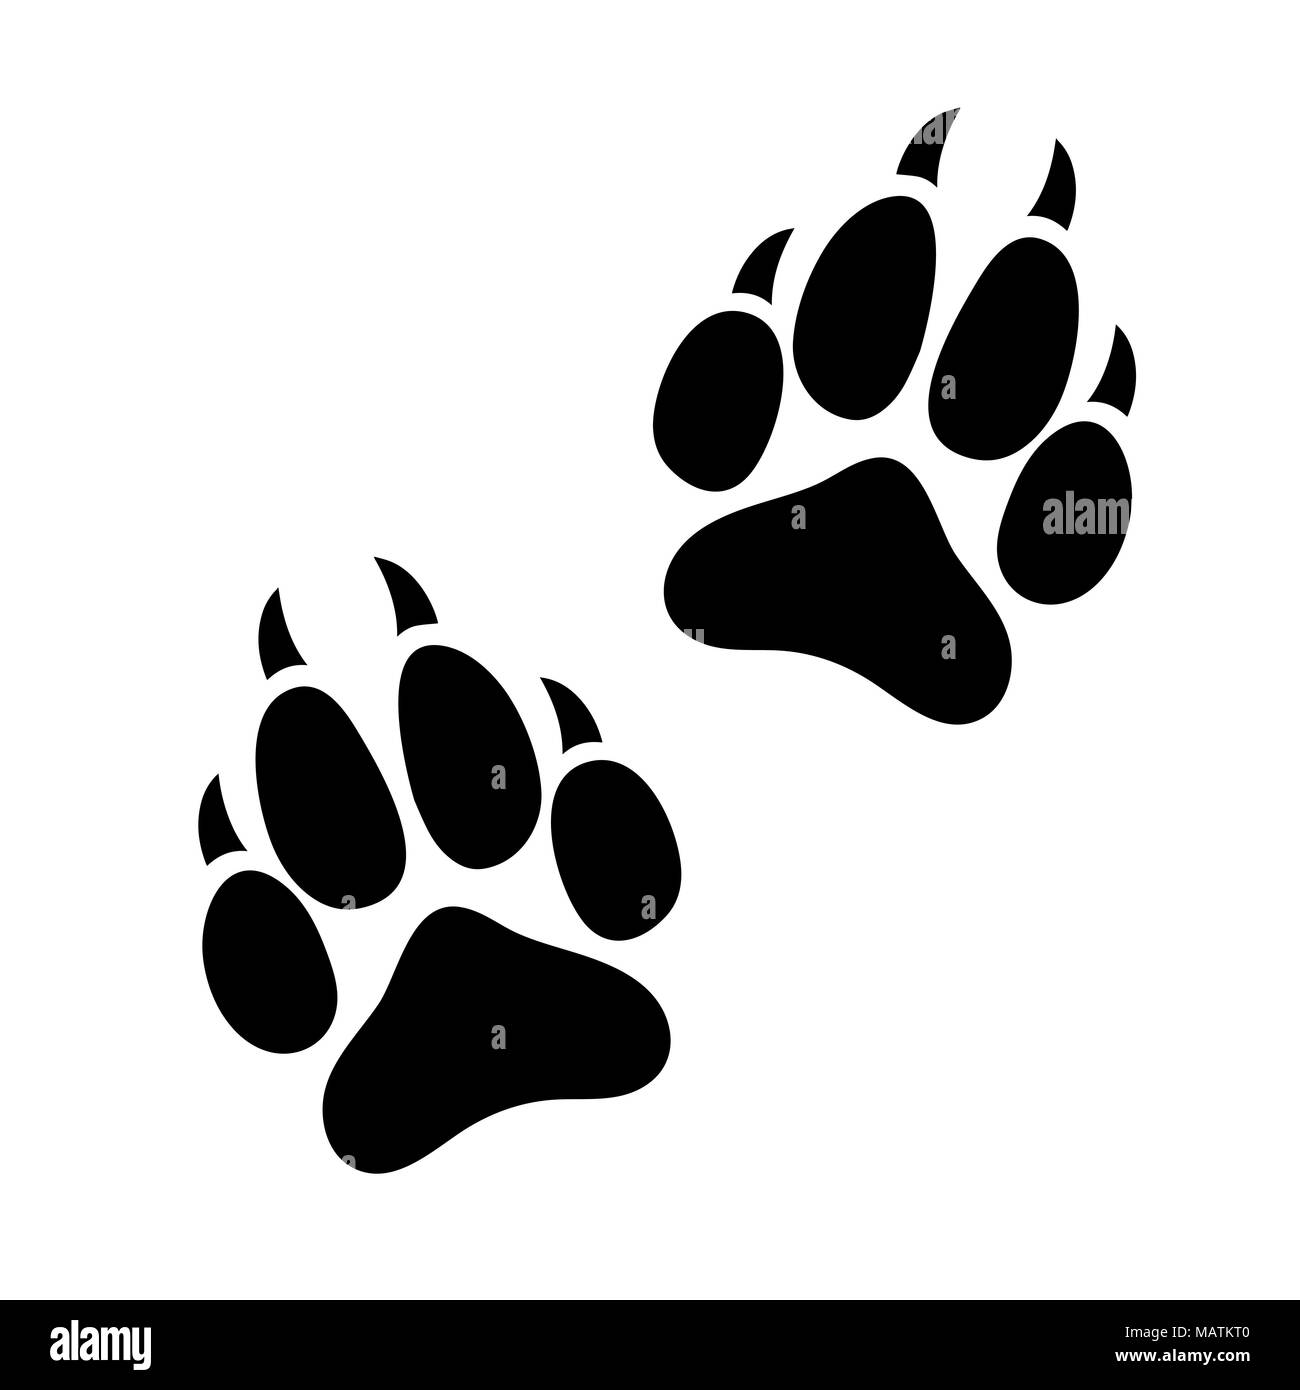 3d23a5401e9d Paw print animal dog or cat clawed, silhouette footprints of an animal,  flat icon, logo, black traces isolated on white background